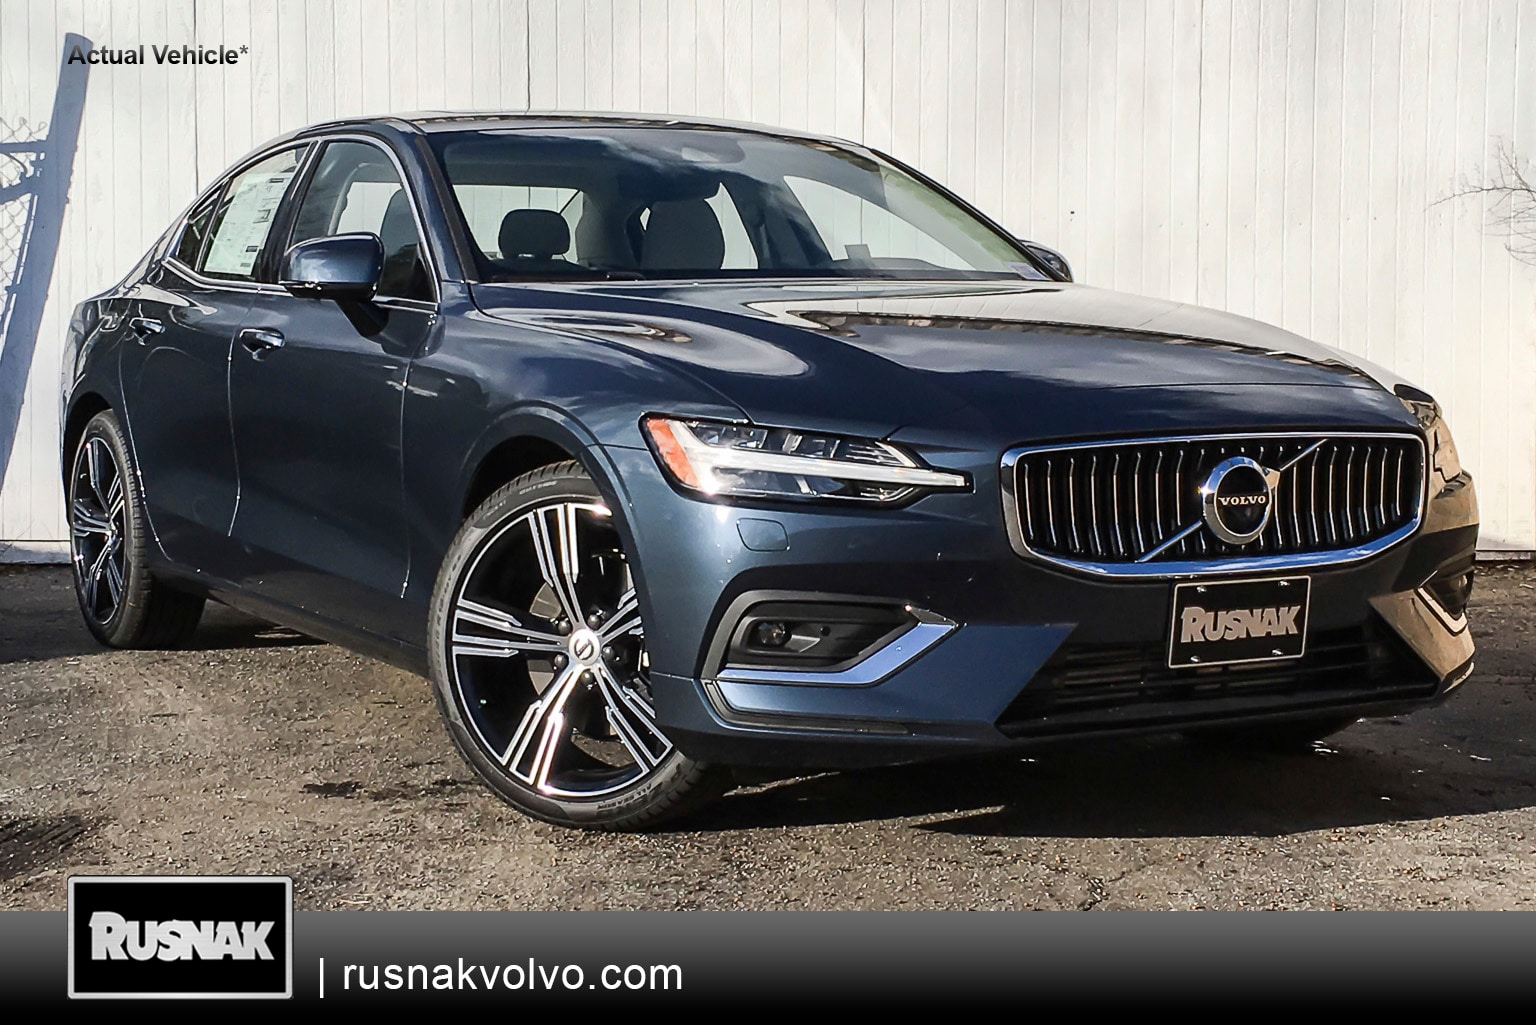 2019 For Sale in Pasadena, Anaheim Hills, Thousand Oaks & Arcadia CA | Rusnak Auto Group